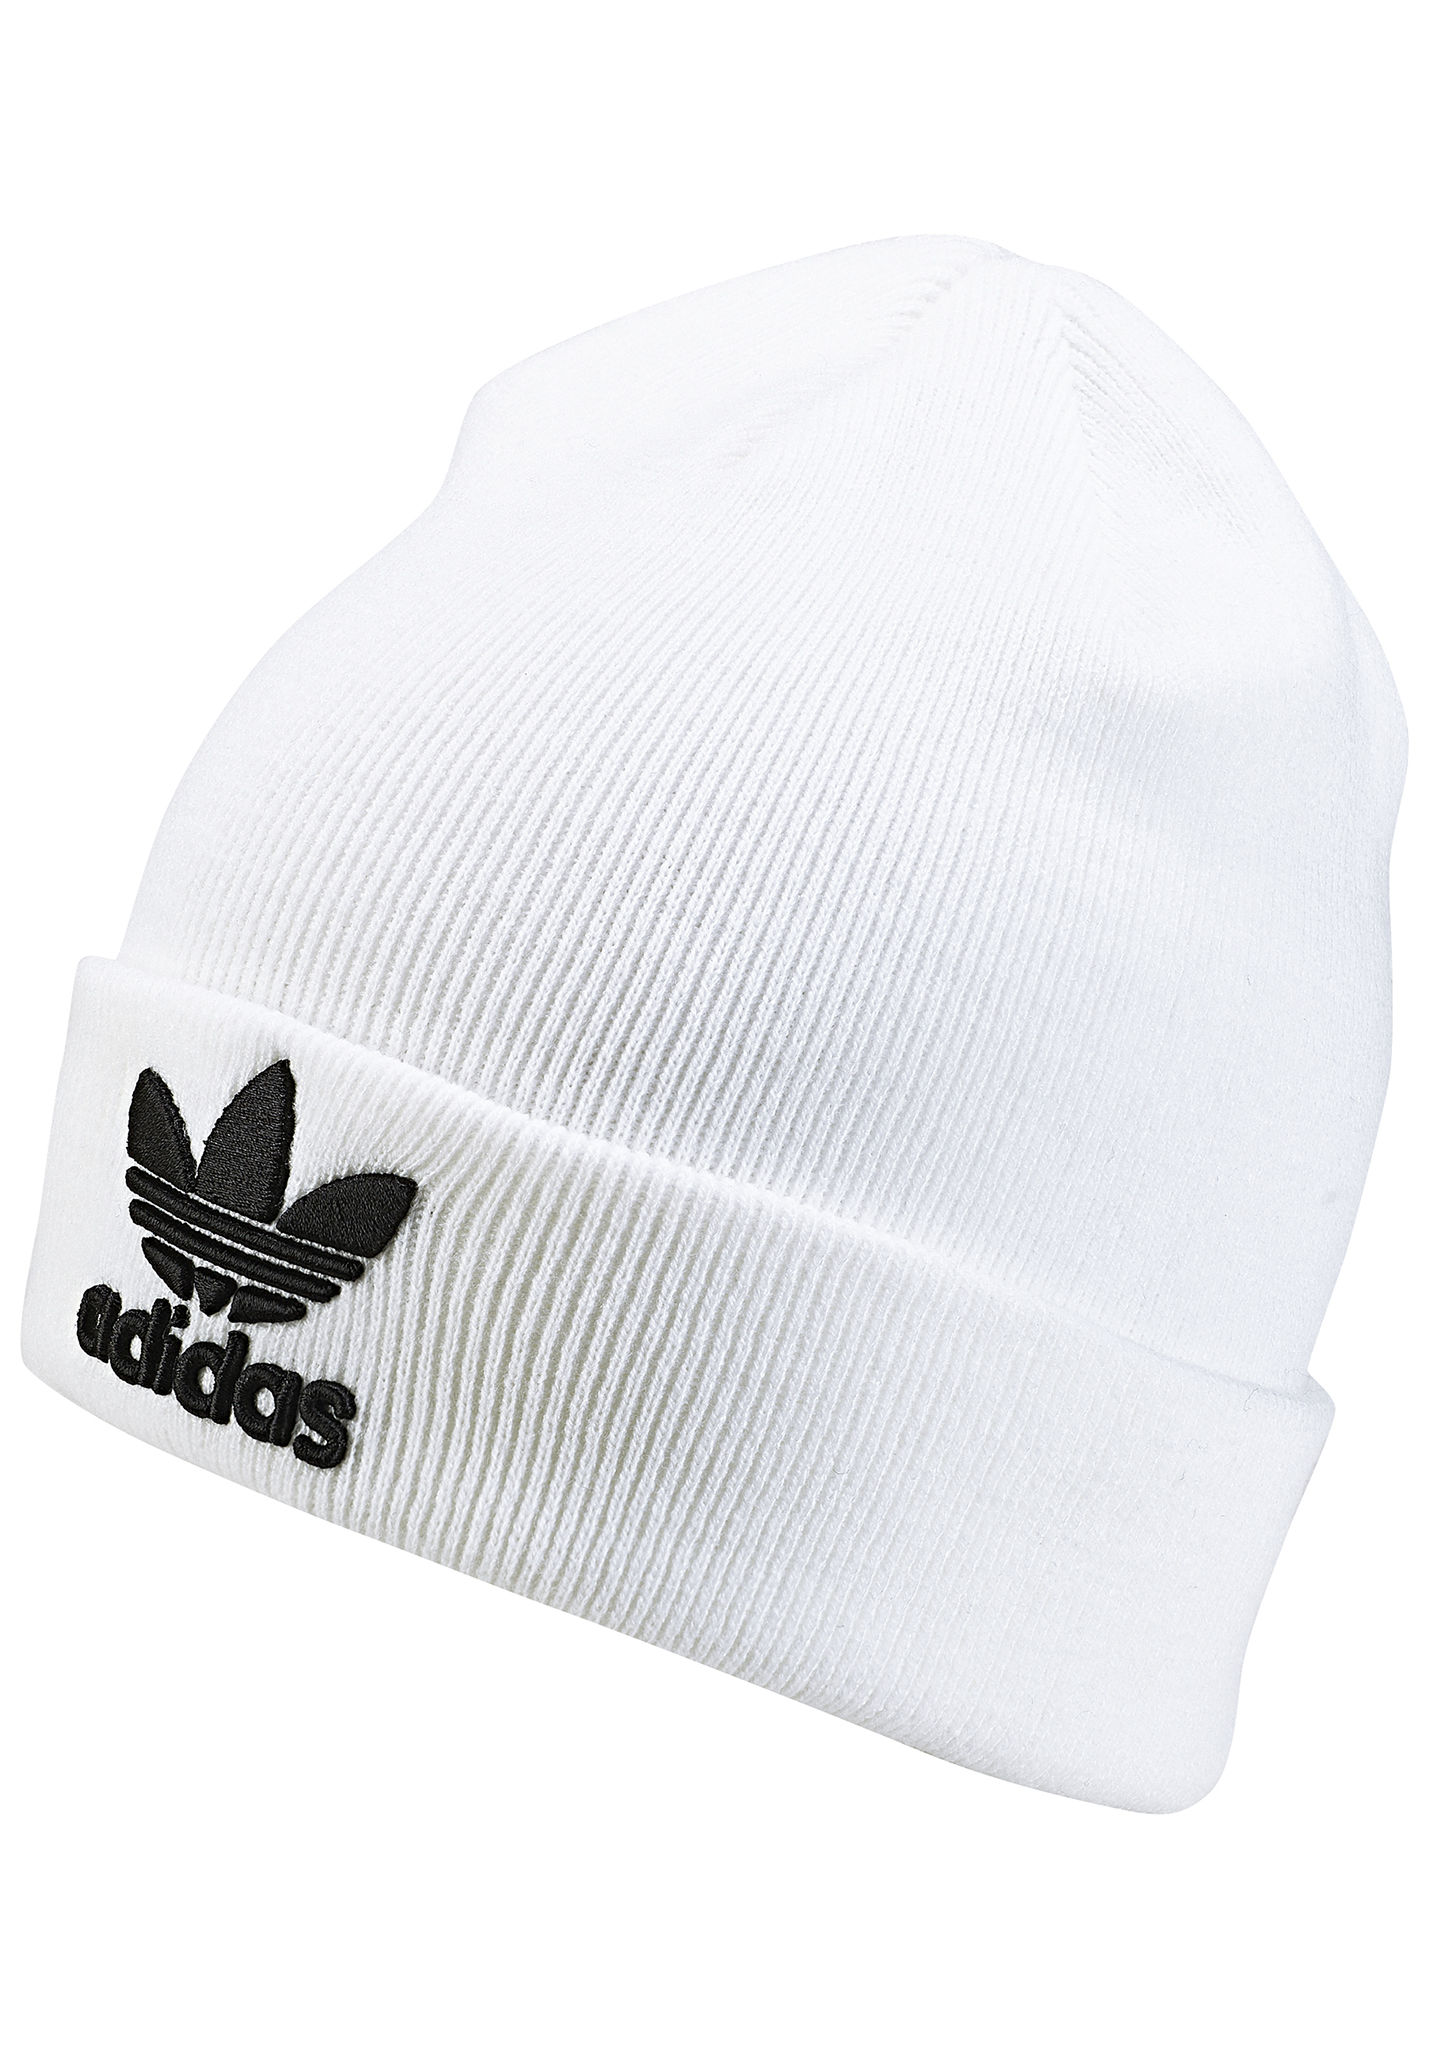 332b5deee6027 ADIDAS ORIGINALS Trefoil - Beanie - White - Planet Sports